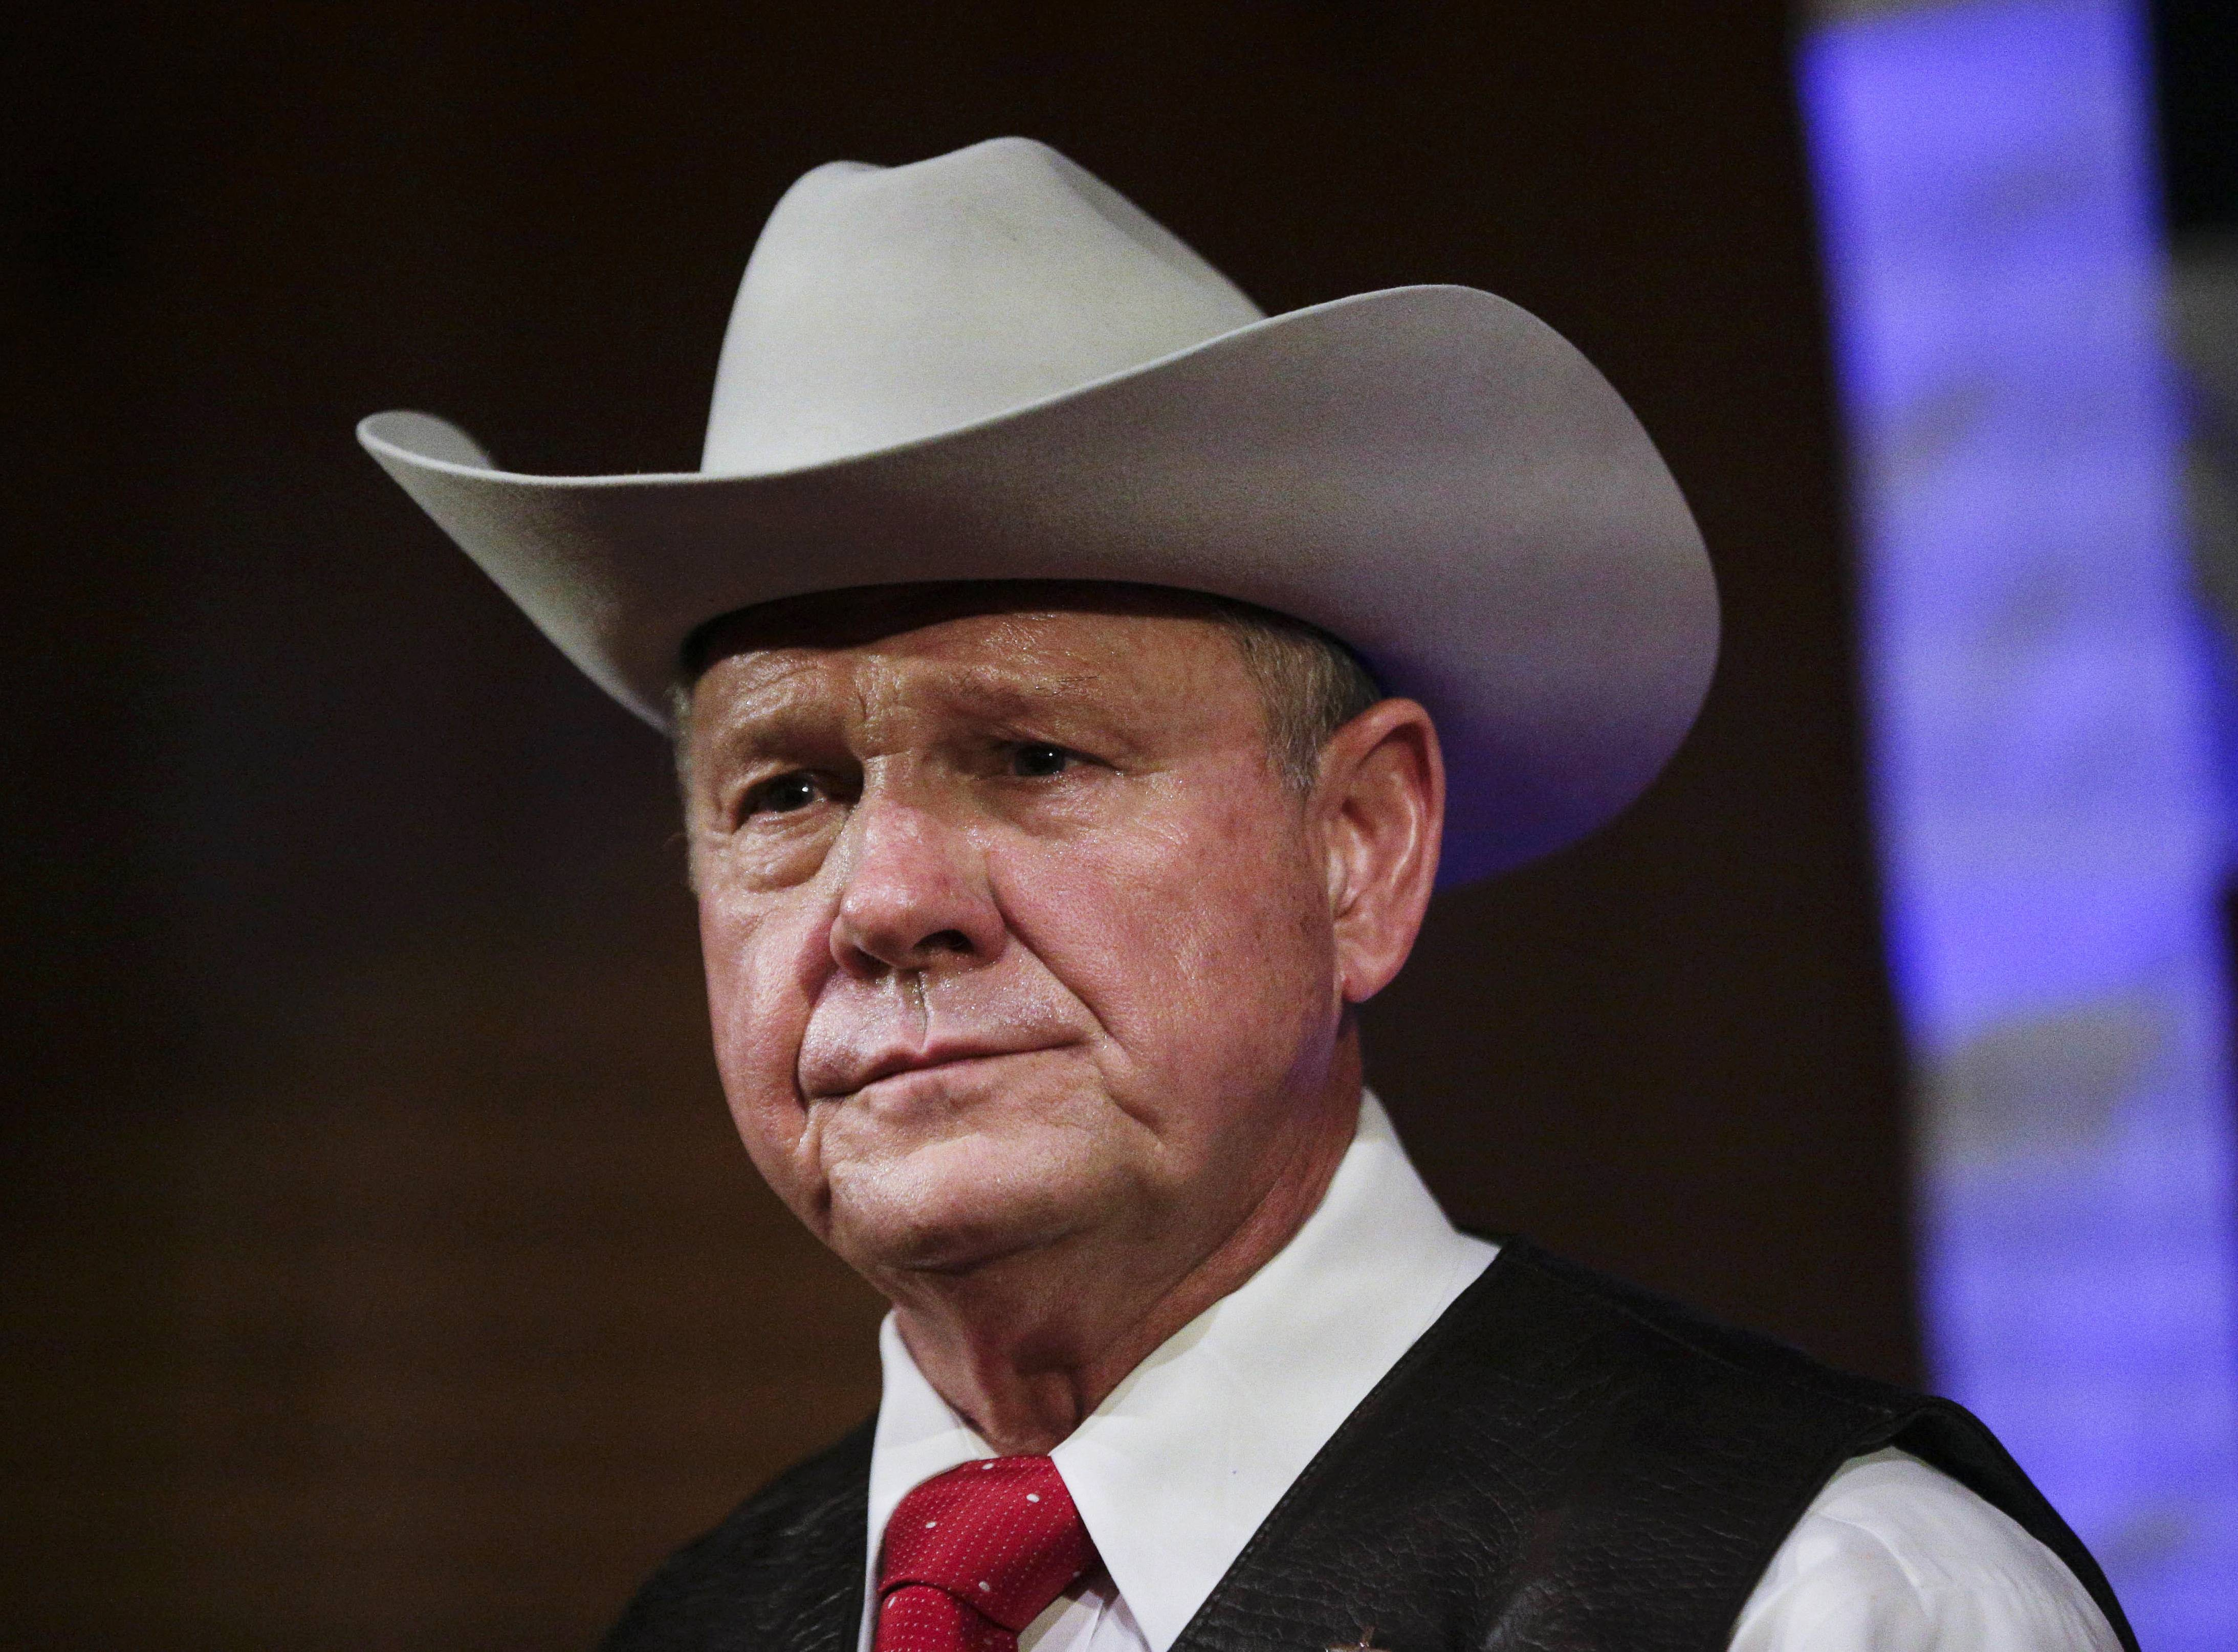 Former Alabama Chief Justice and U.S. Senate candidate Roy Moore